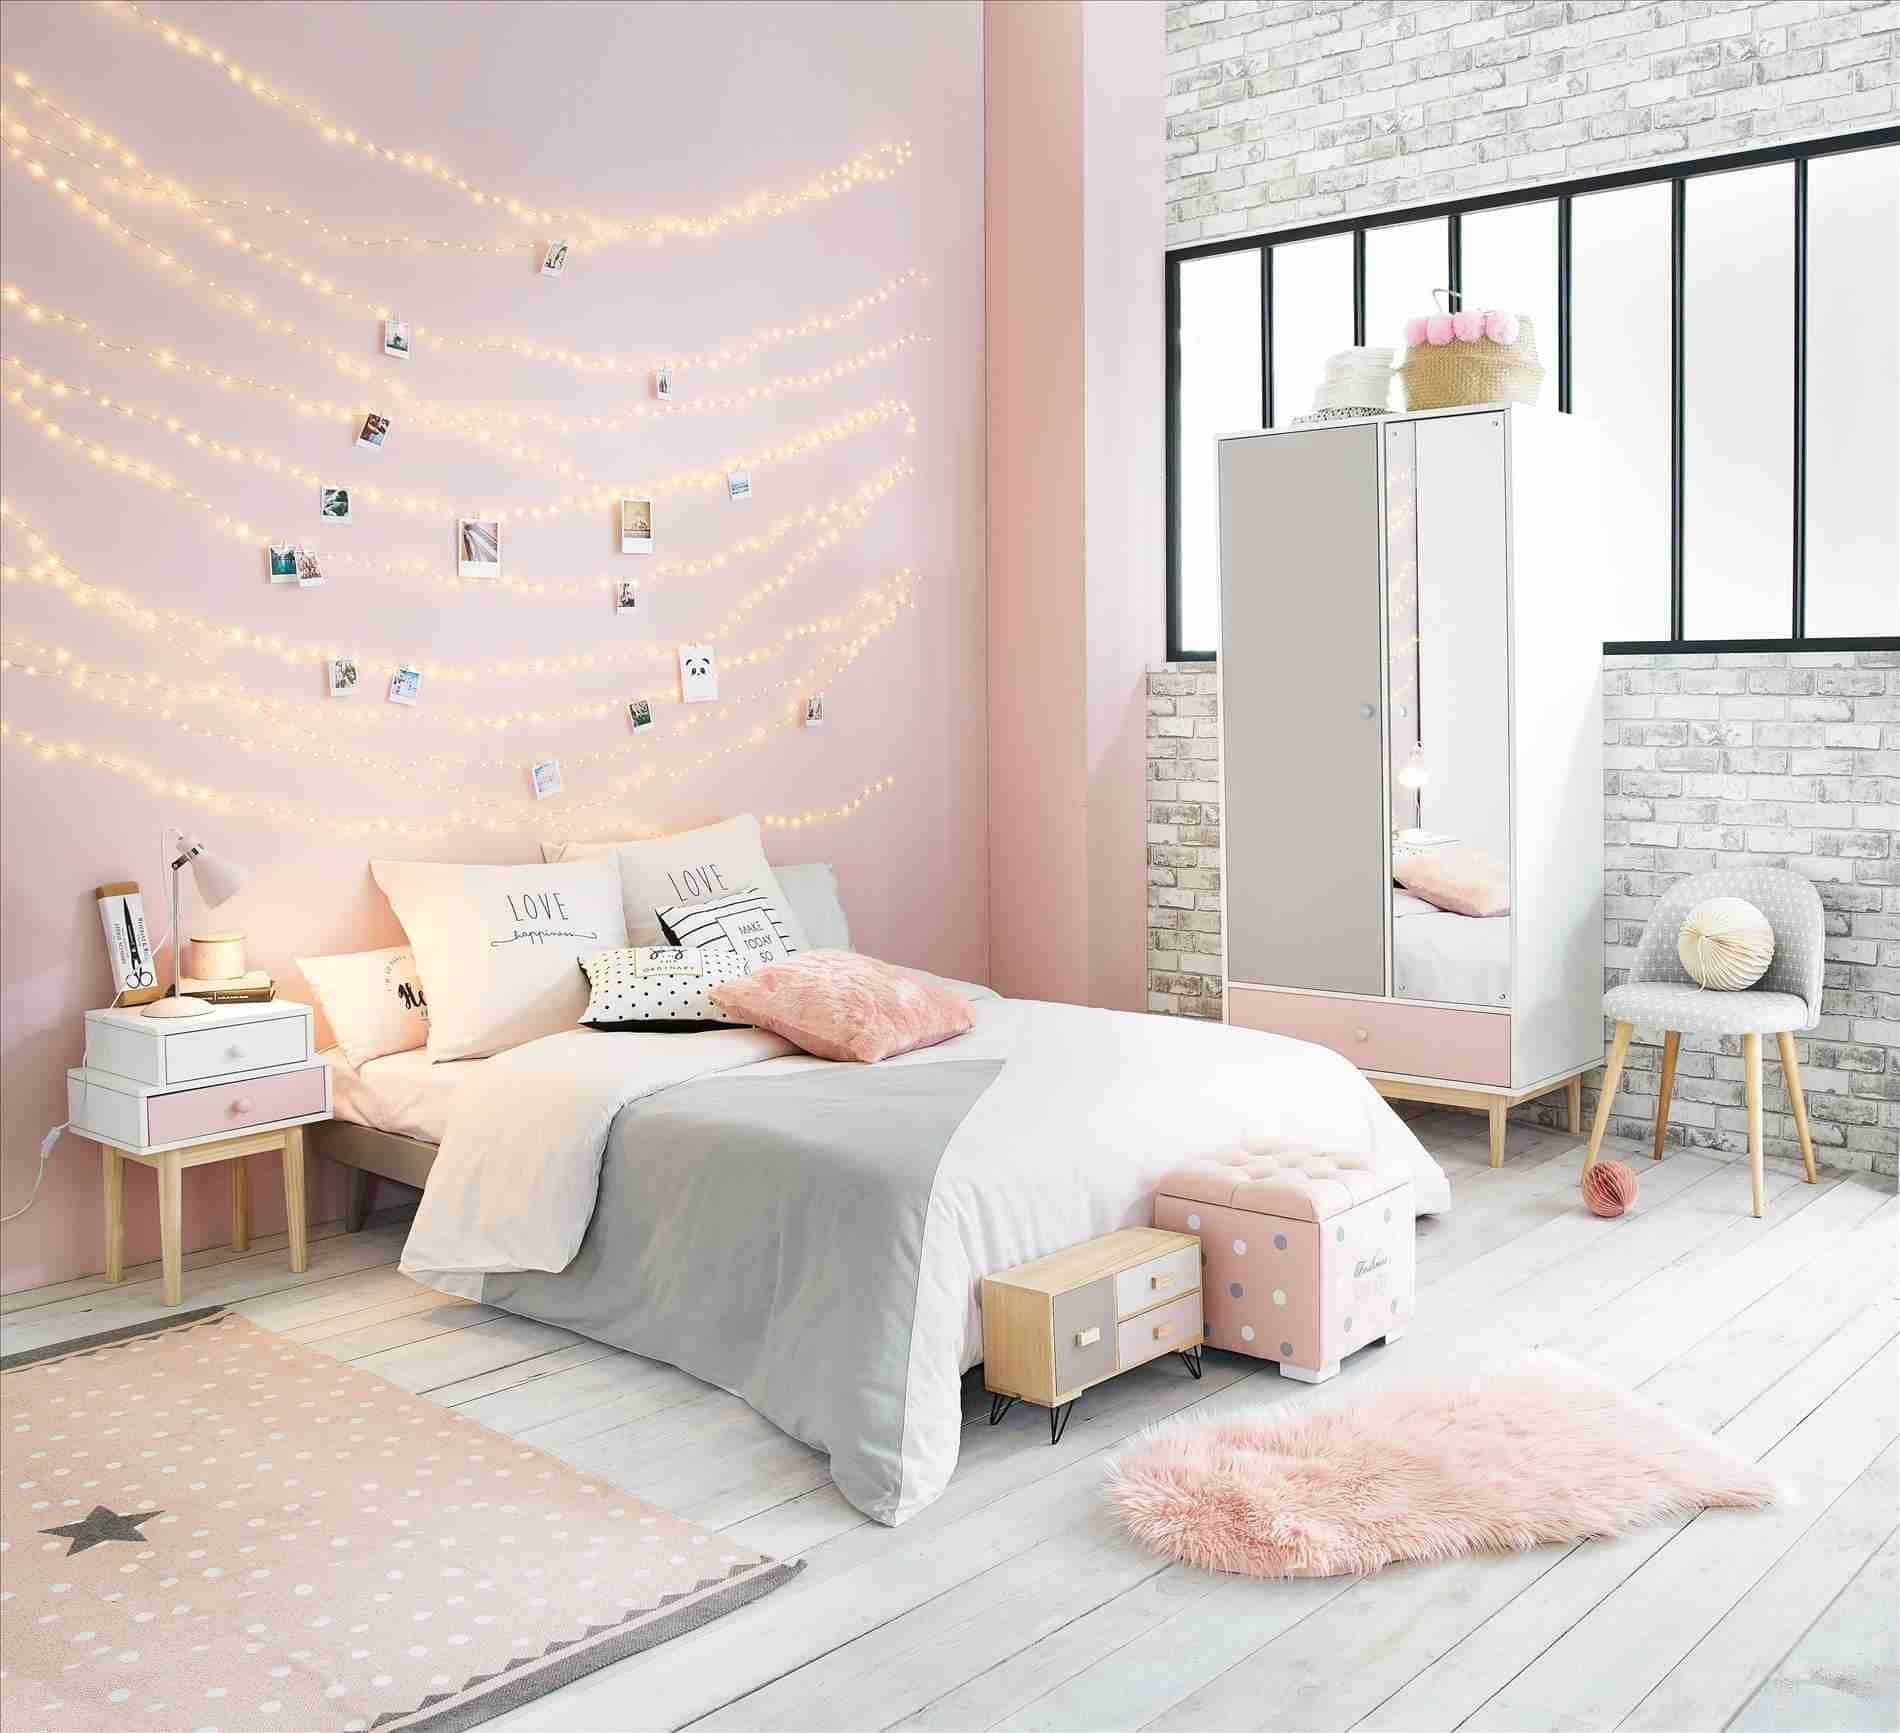 Crazy Cool Kids Bedroom Ideas on Rooms For Teenagers  id=19379